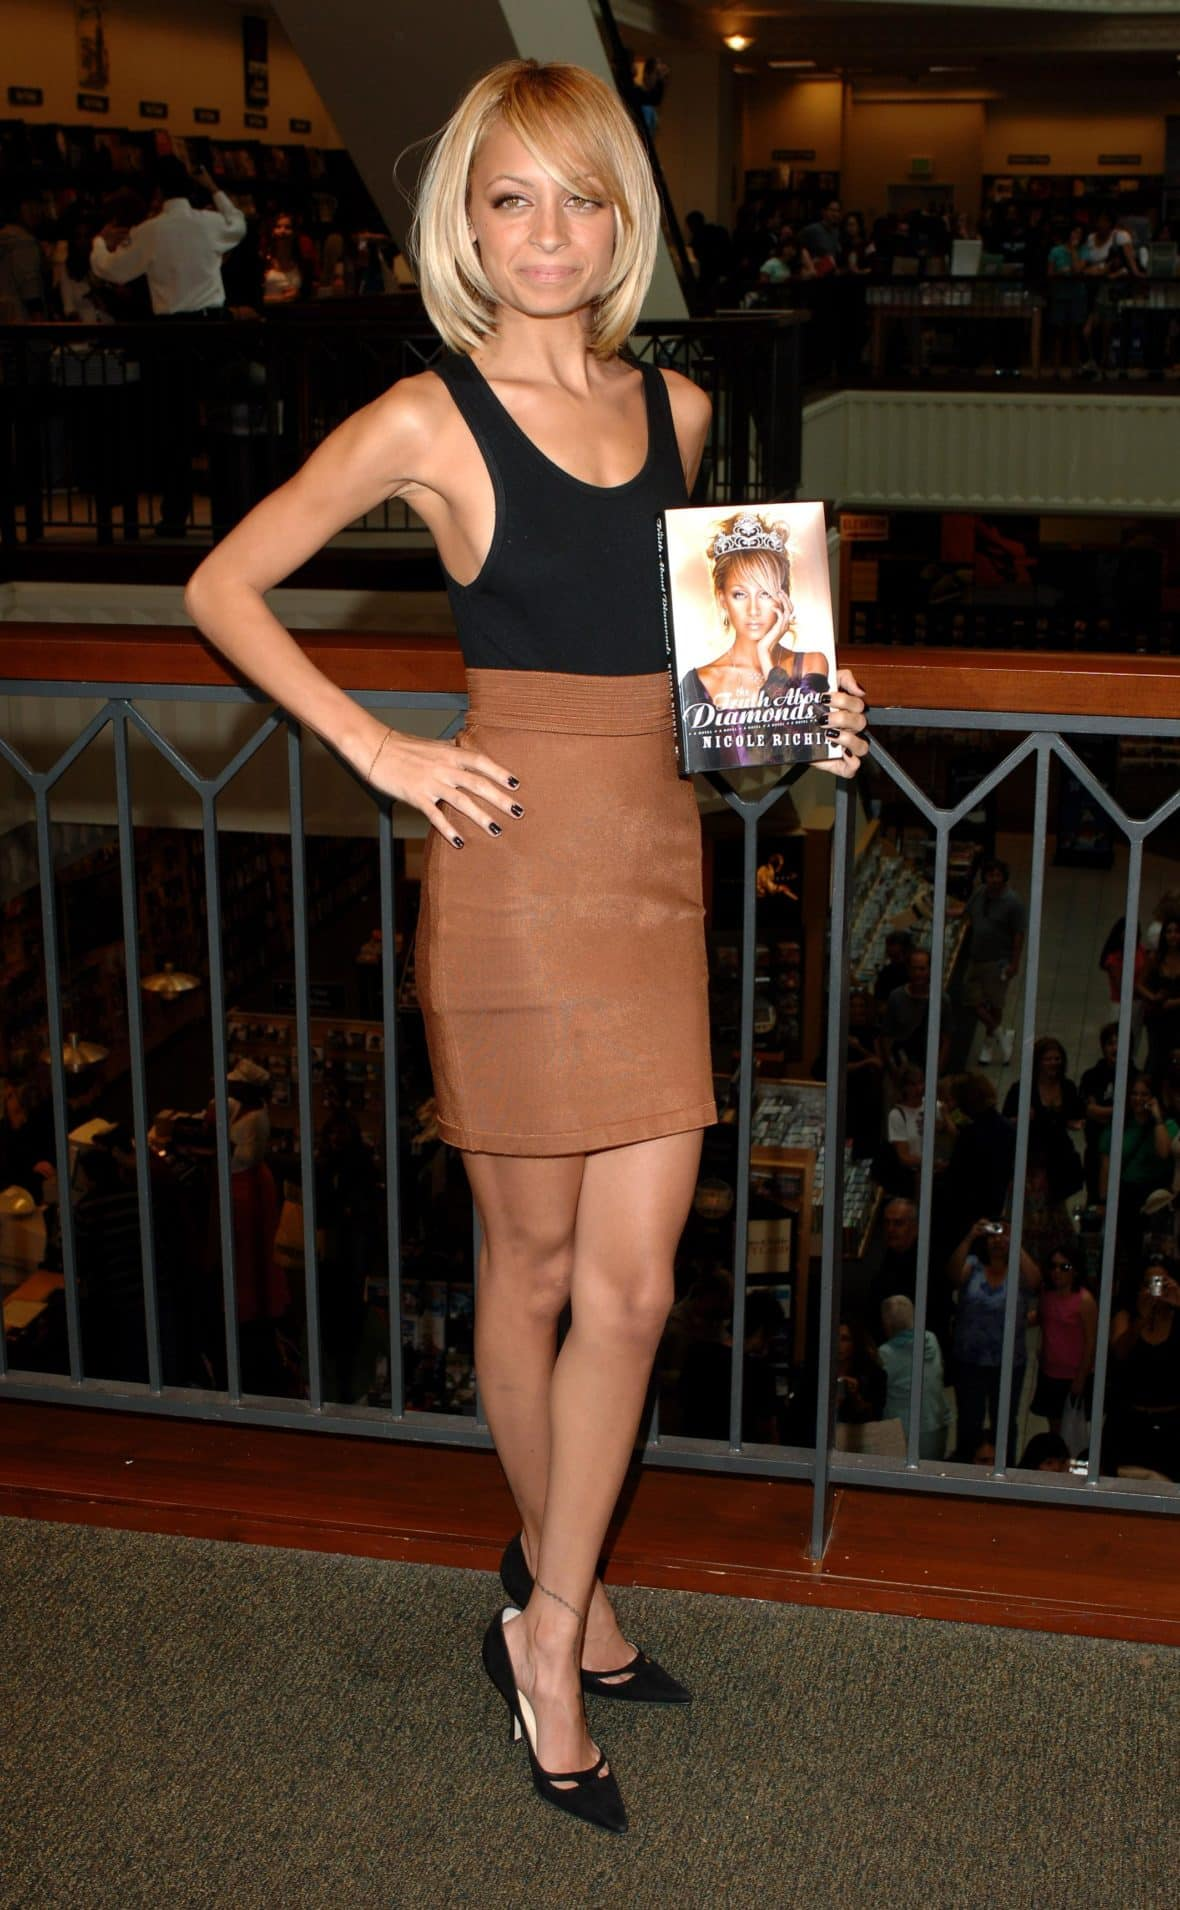 Nicole Richie in a black tank top and camel brown skirt holding a book.